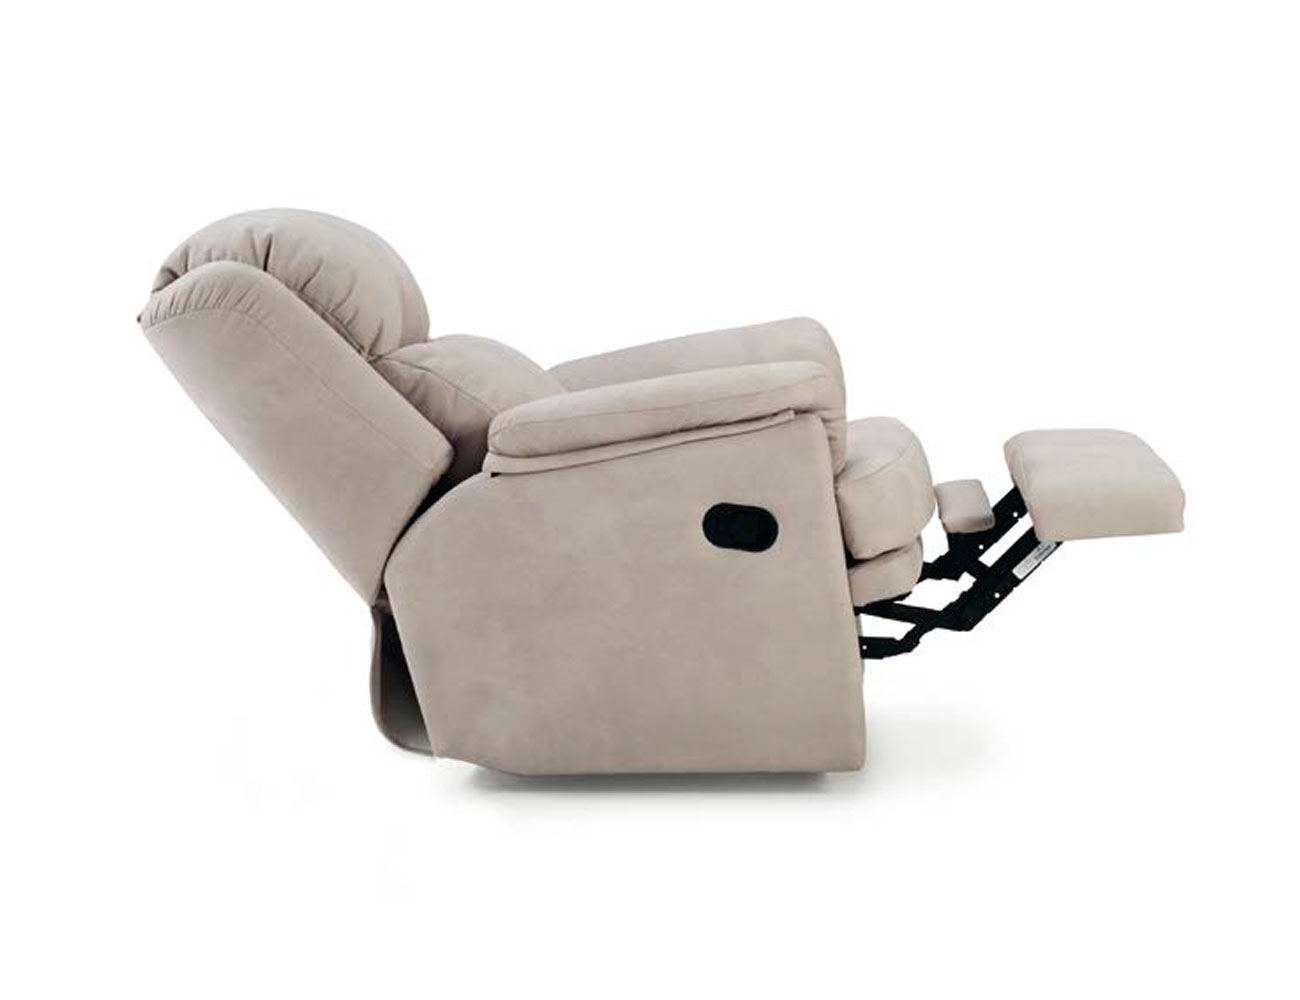 Sillon relax manual palanca esther 15